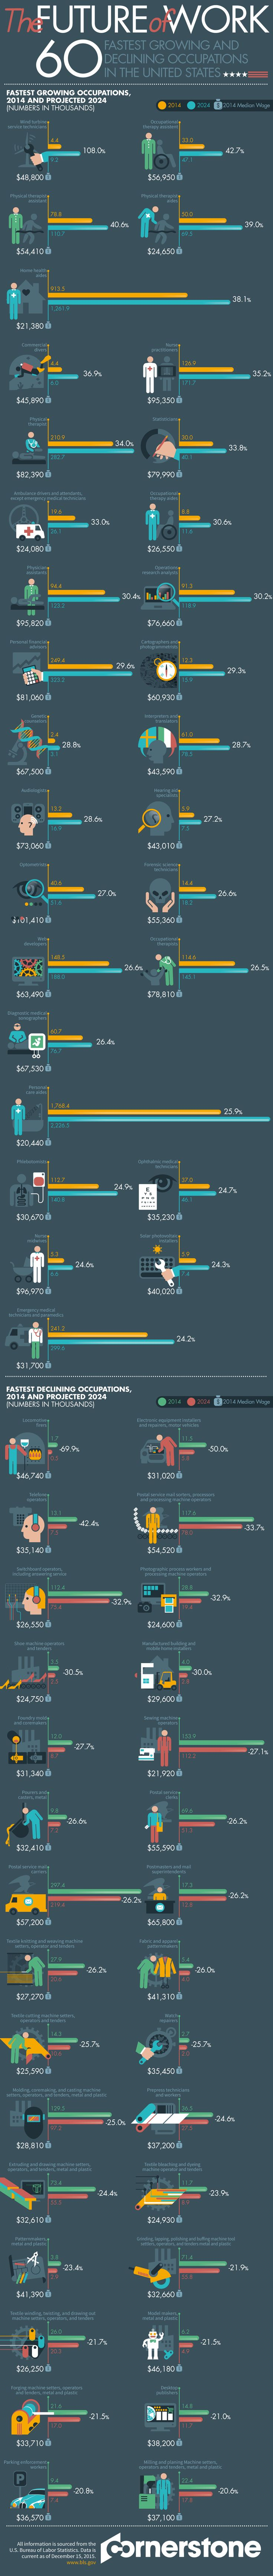 The Future of Work: 60 Fastest Growing and Declining Occupations in the United States #Infographic #Business #Job